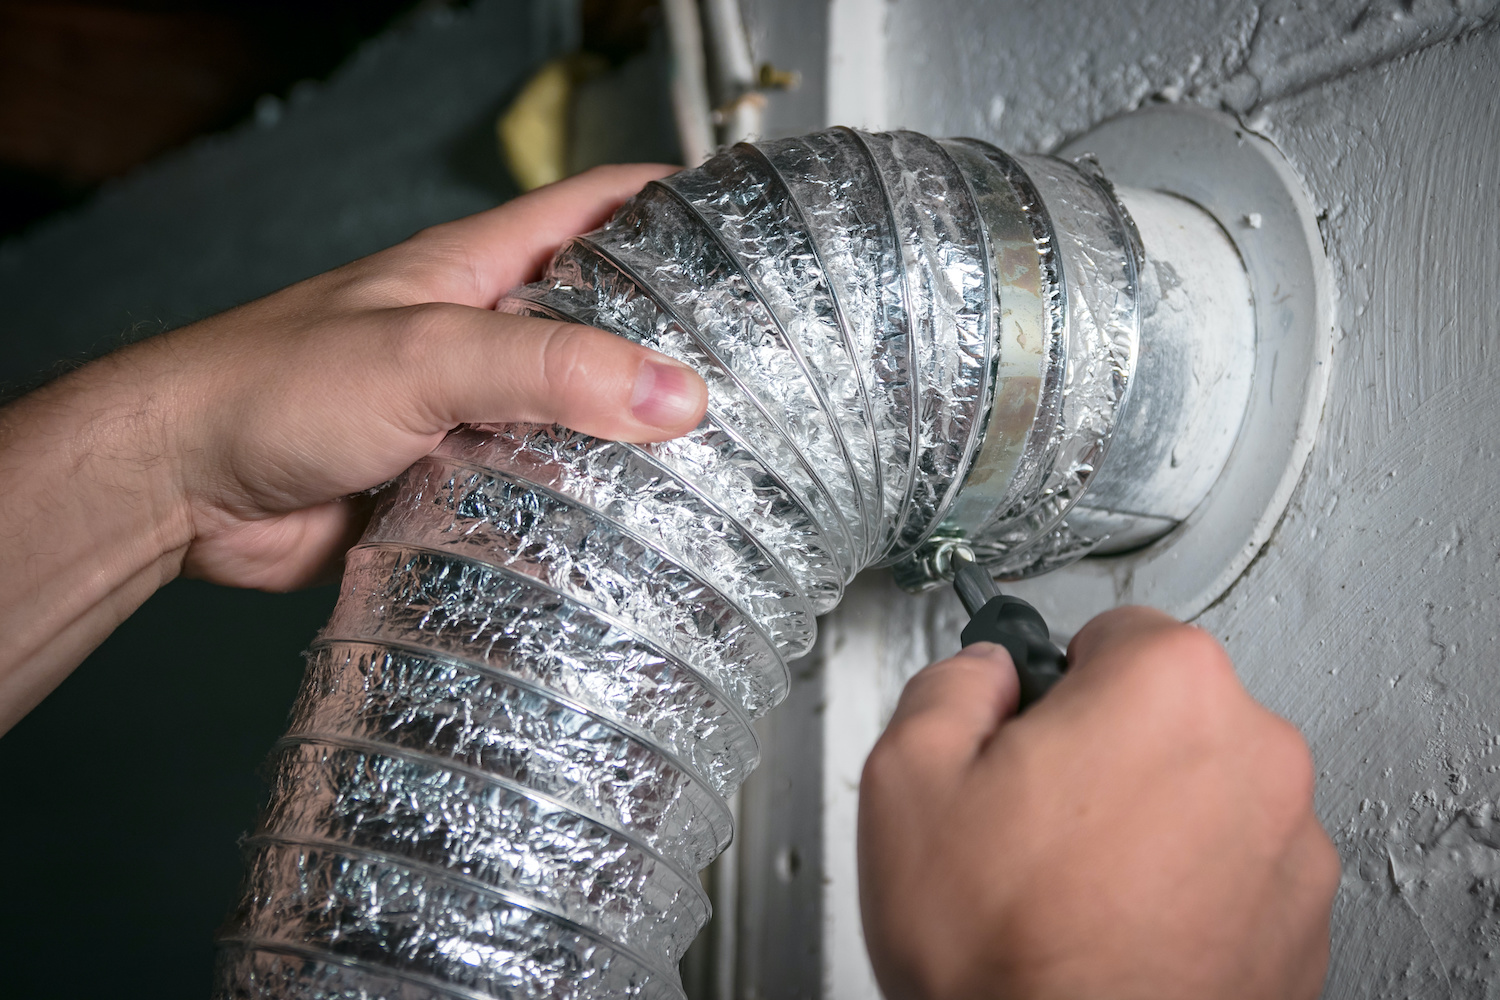 Dryer Vent Cleaning Install